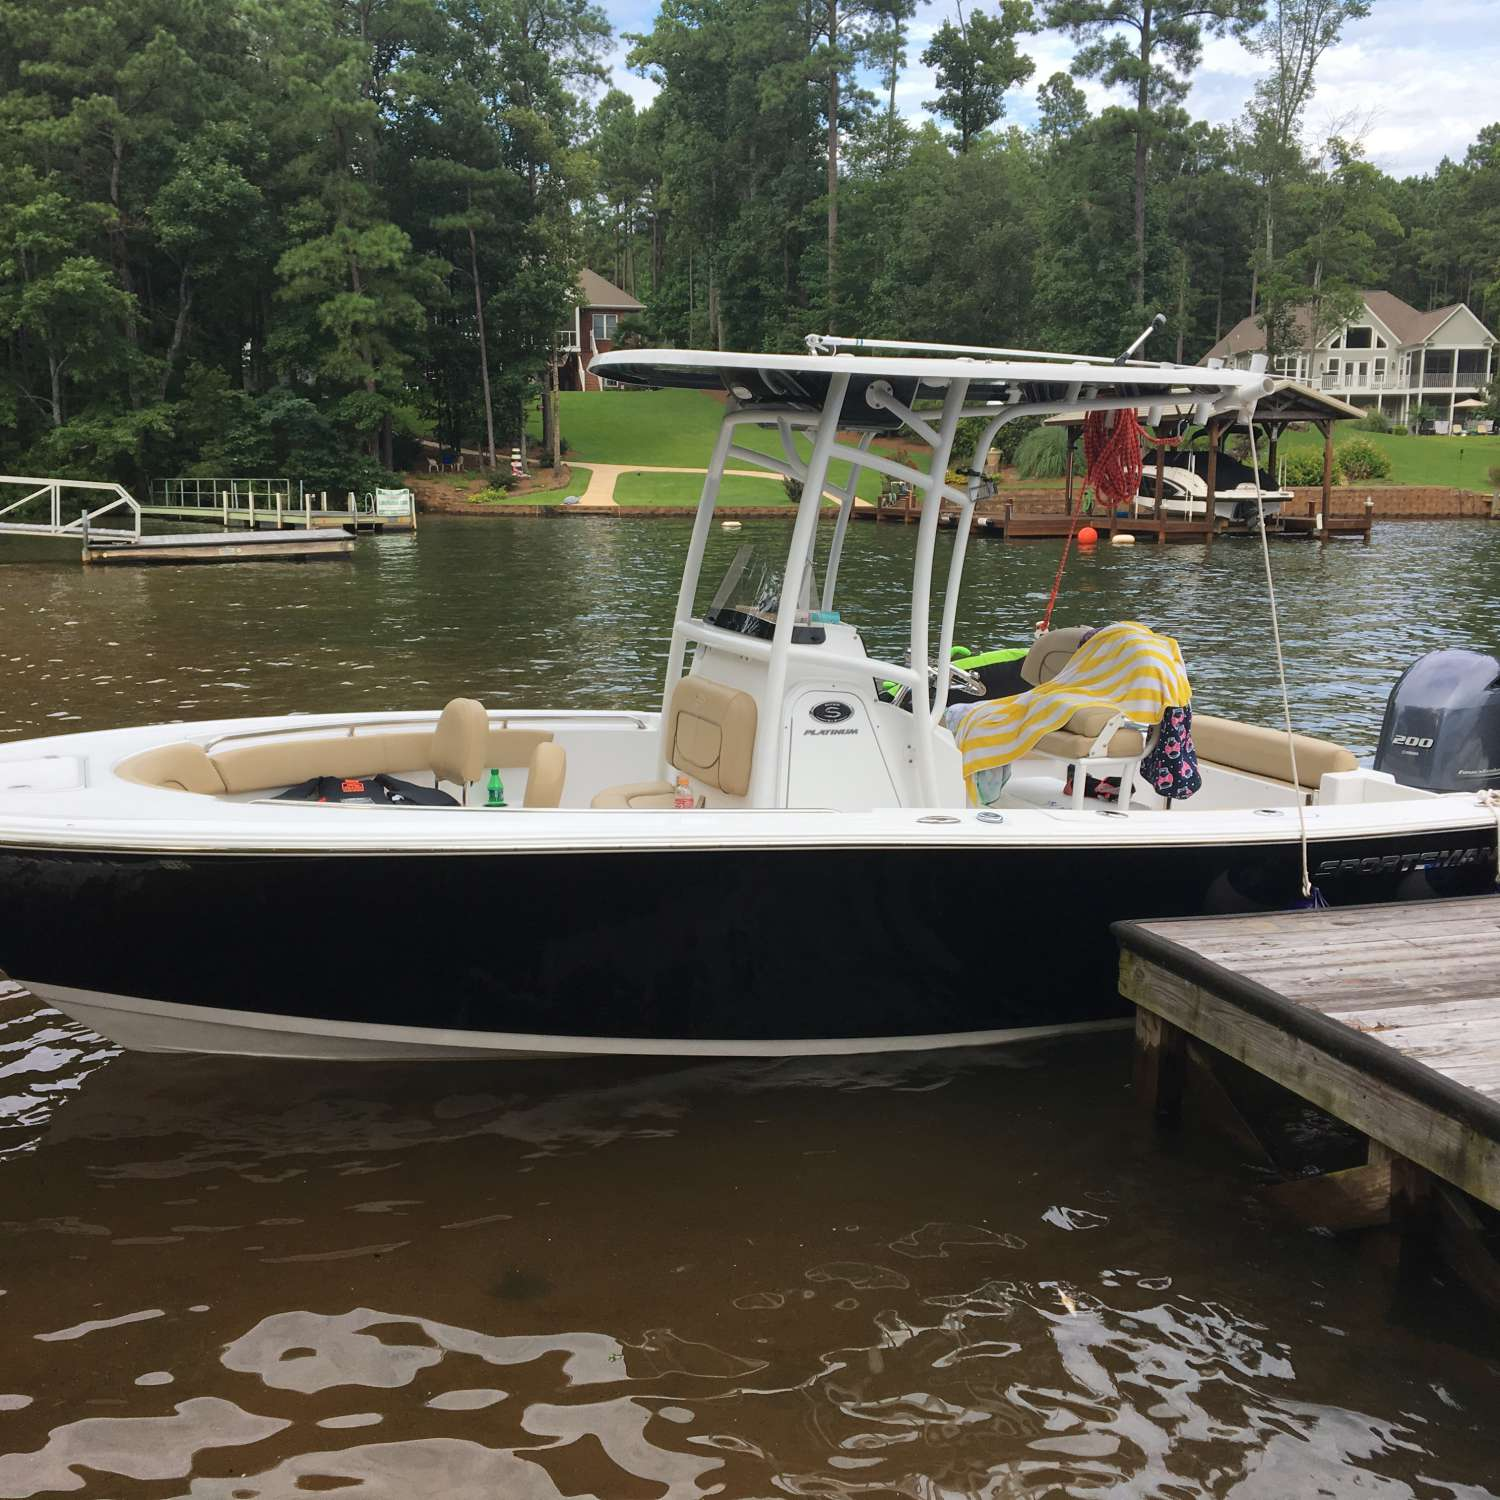 Title: Lake Life - On board their Sportsman Open 212 Center Console - Location: , South Carolina. Participating in the Photo Contest #SportsmanAugust2017